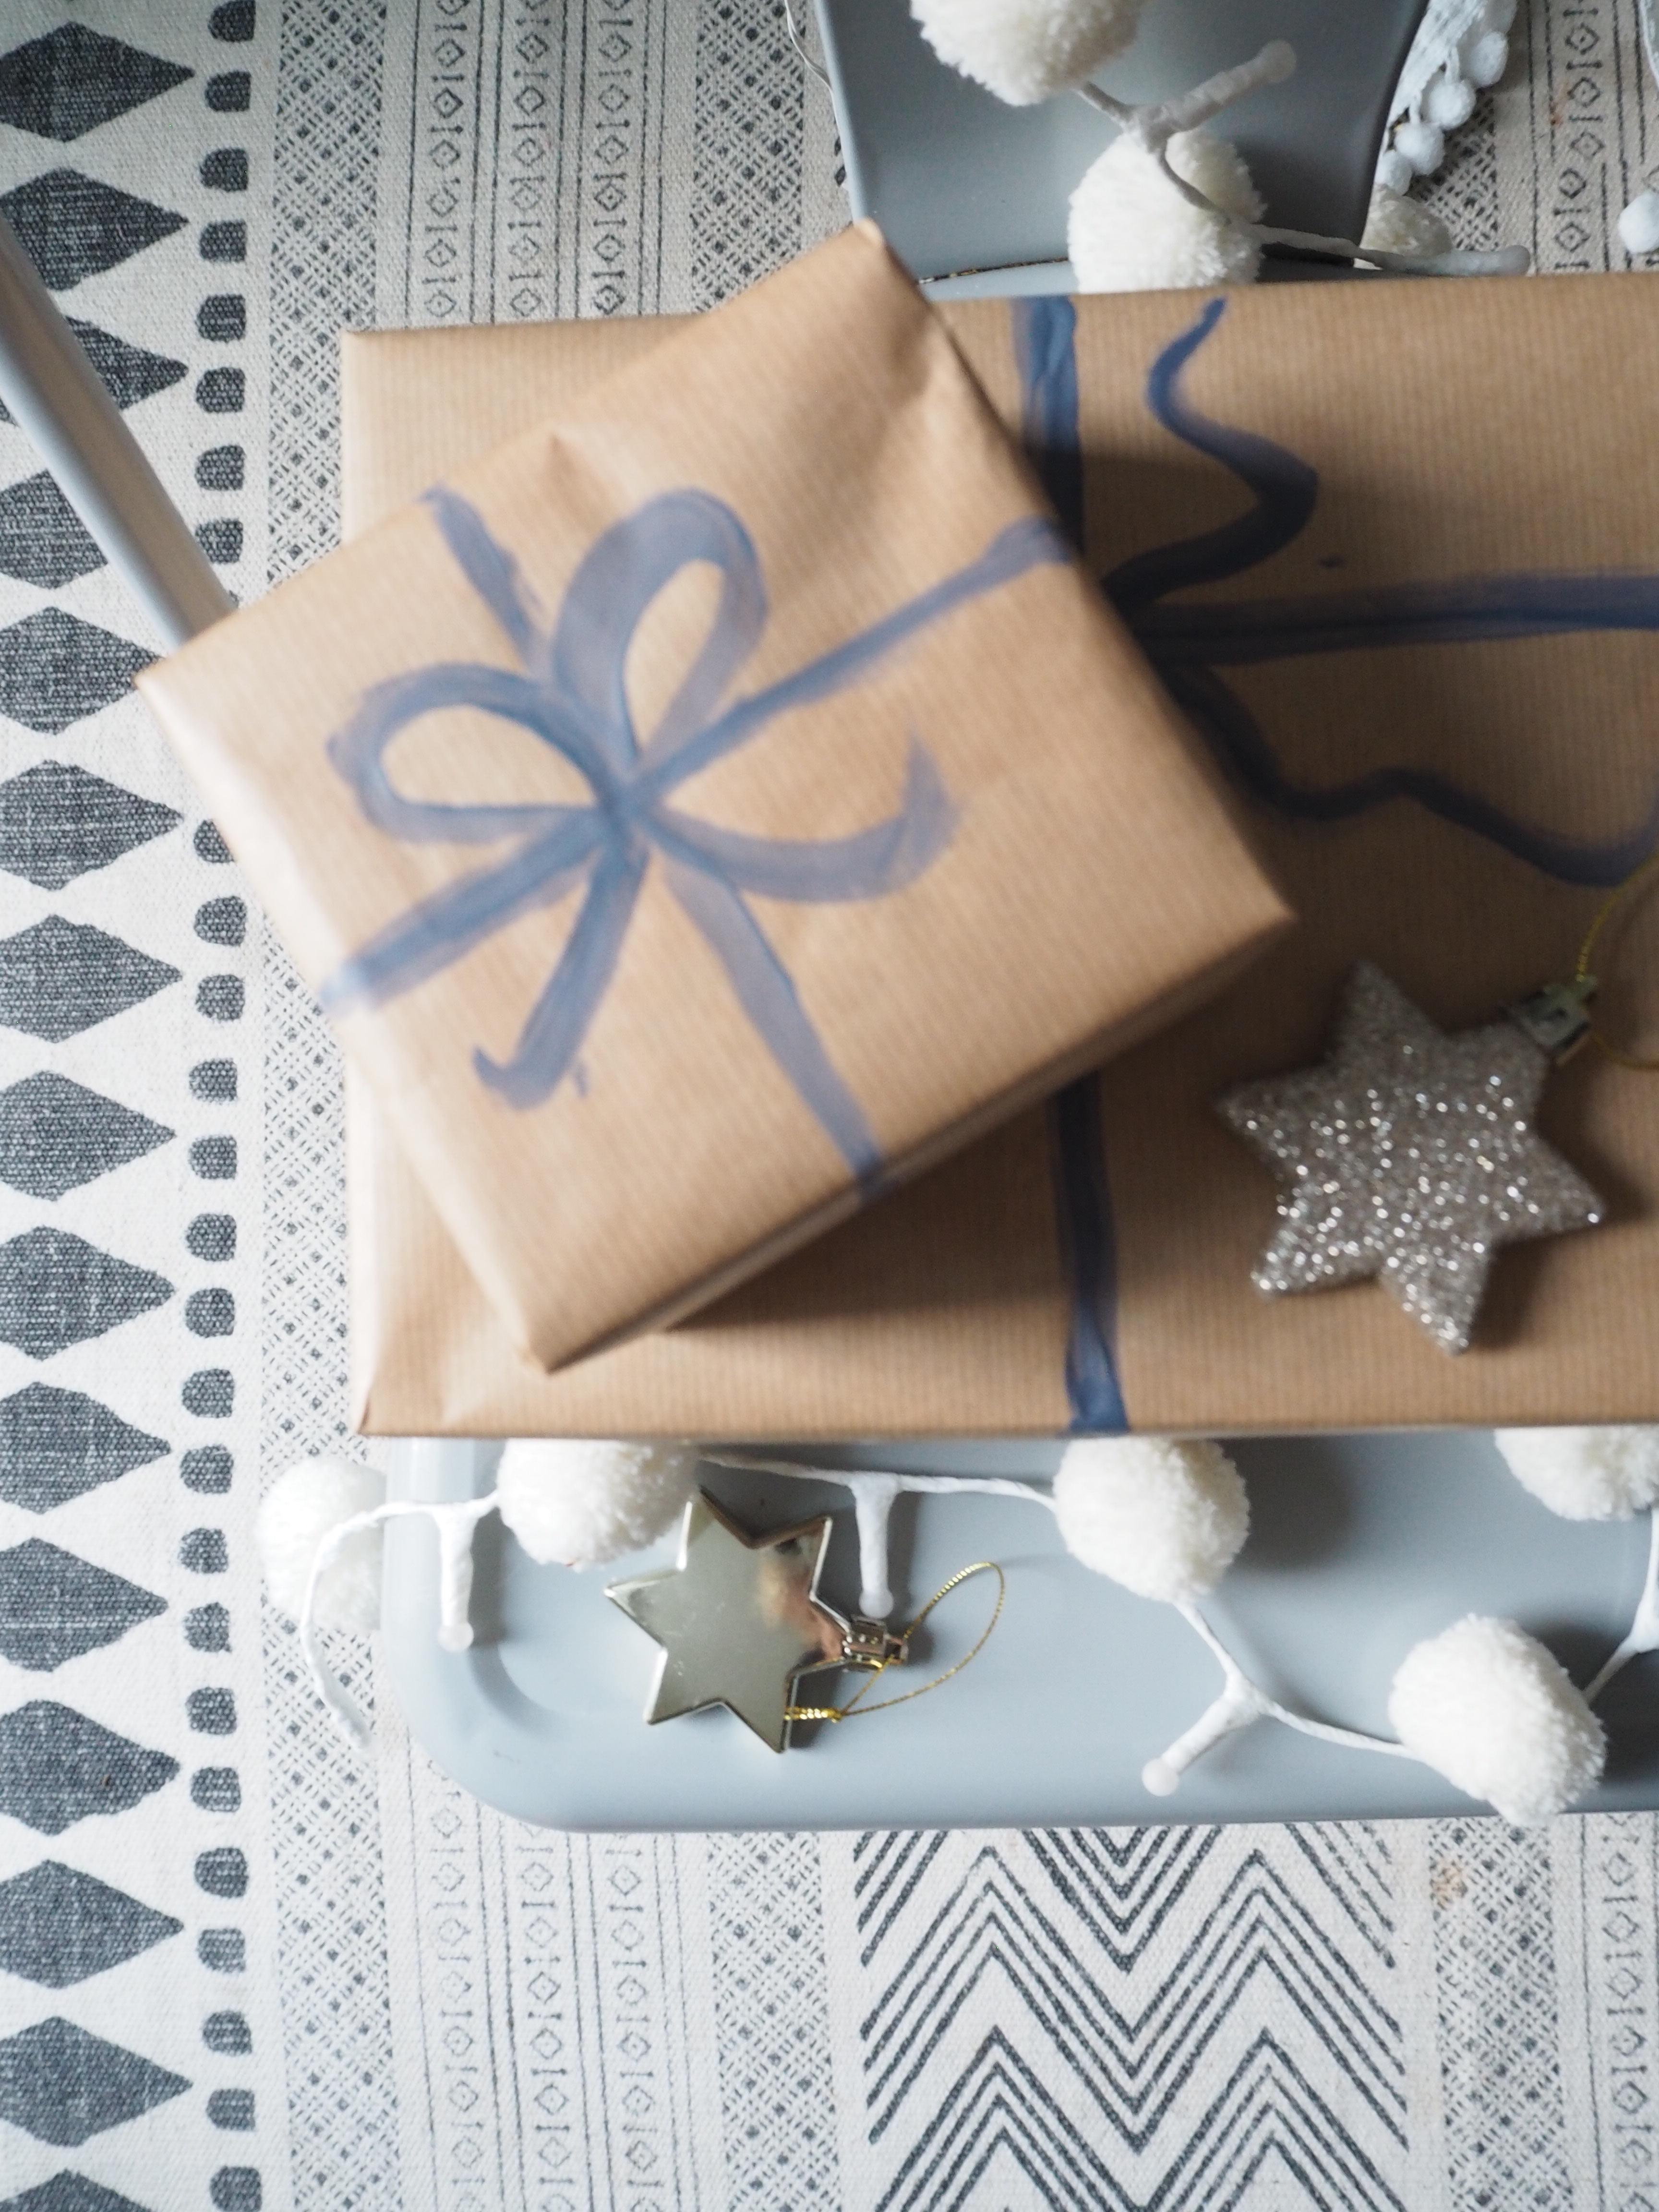 Why not try this easy DIY Christmas gift wrapping idea by Interior Stylist Maxine Brady from lifestyle blog www.welovehomeblog.com